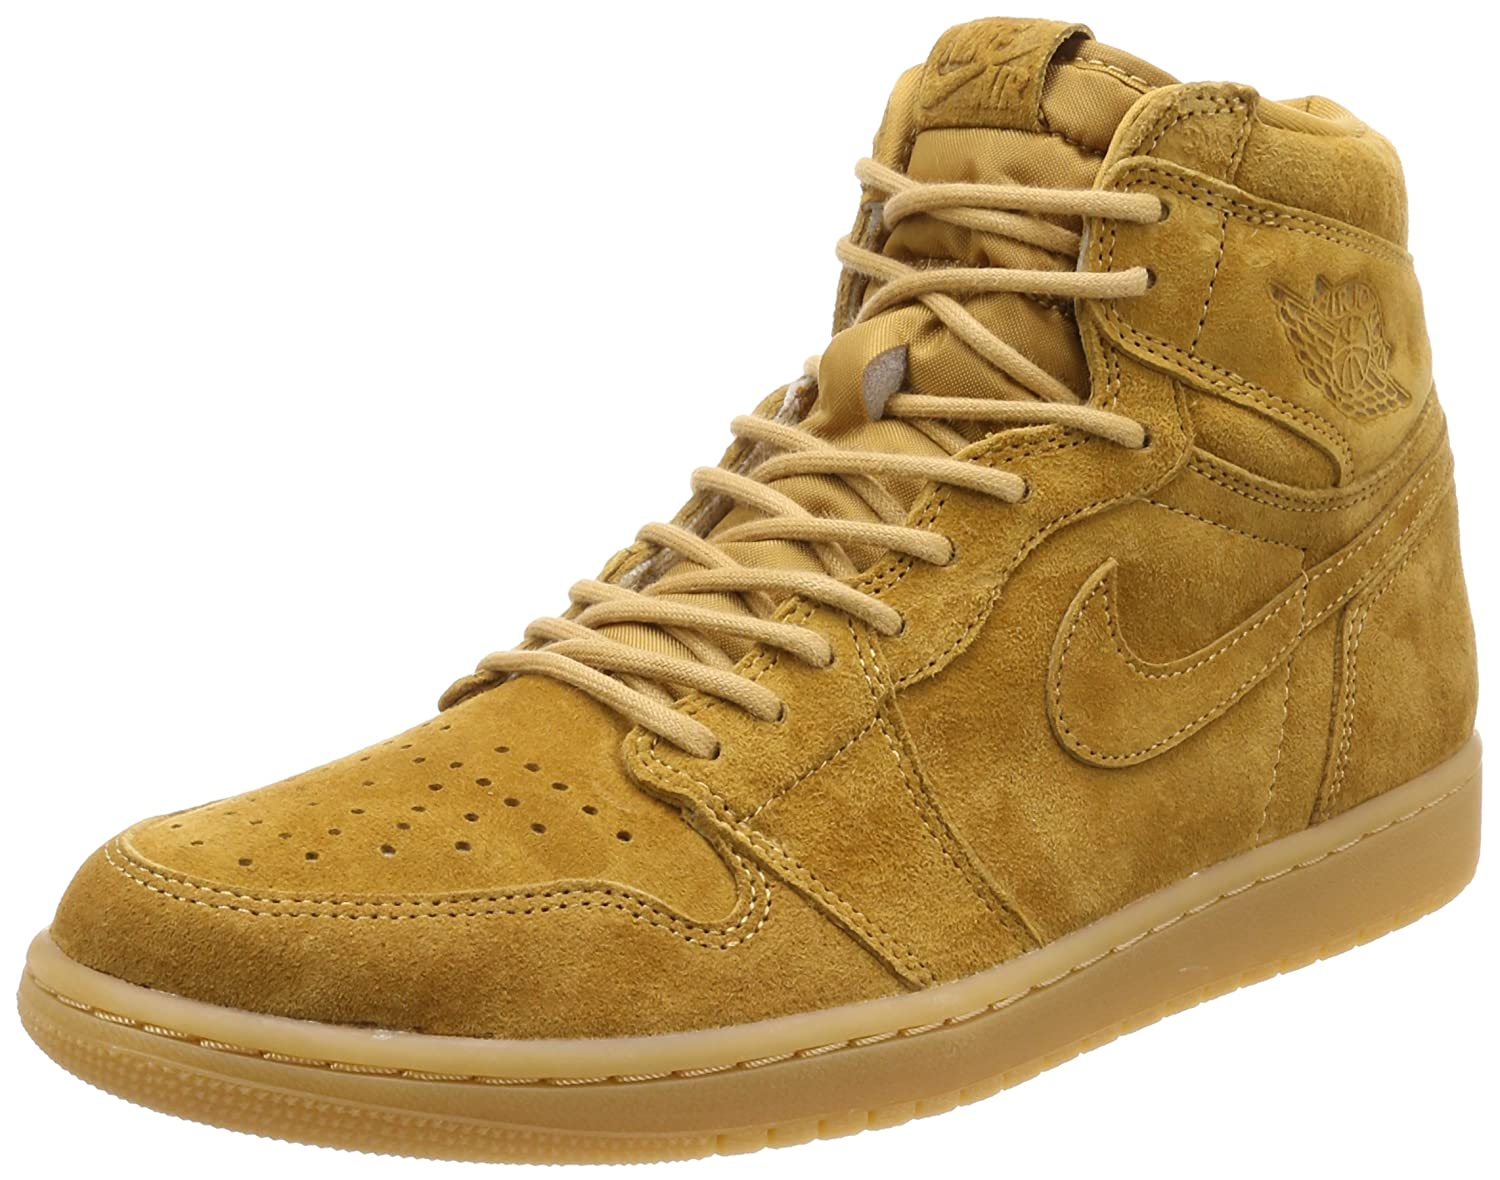 half off 8af60 4a29a Amazon.com   Jordan Nike Men s Air 1 Retro High OG Basketball Shoe 10.5  Yellow   Basketball